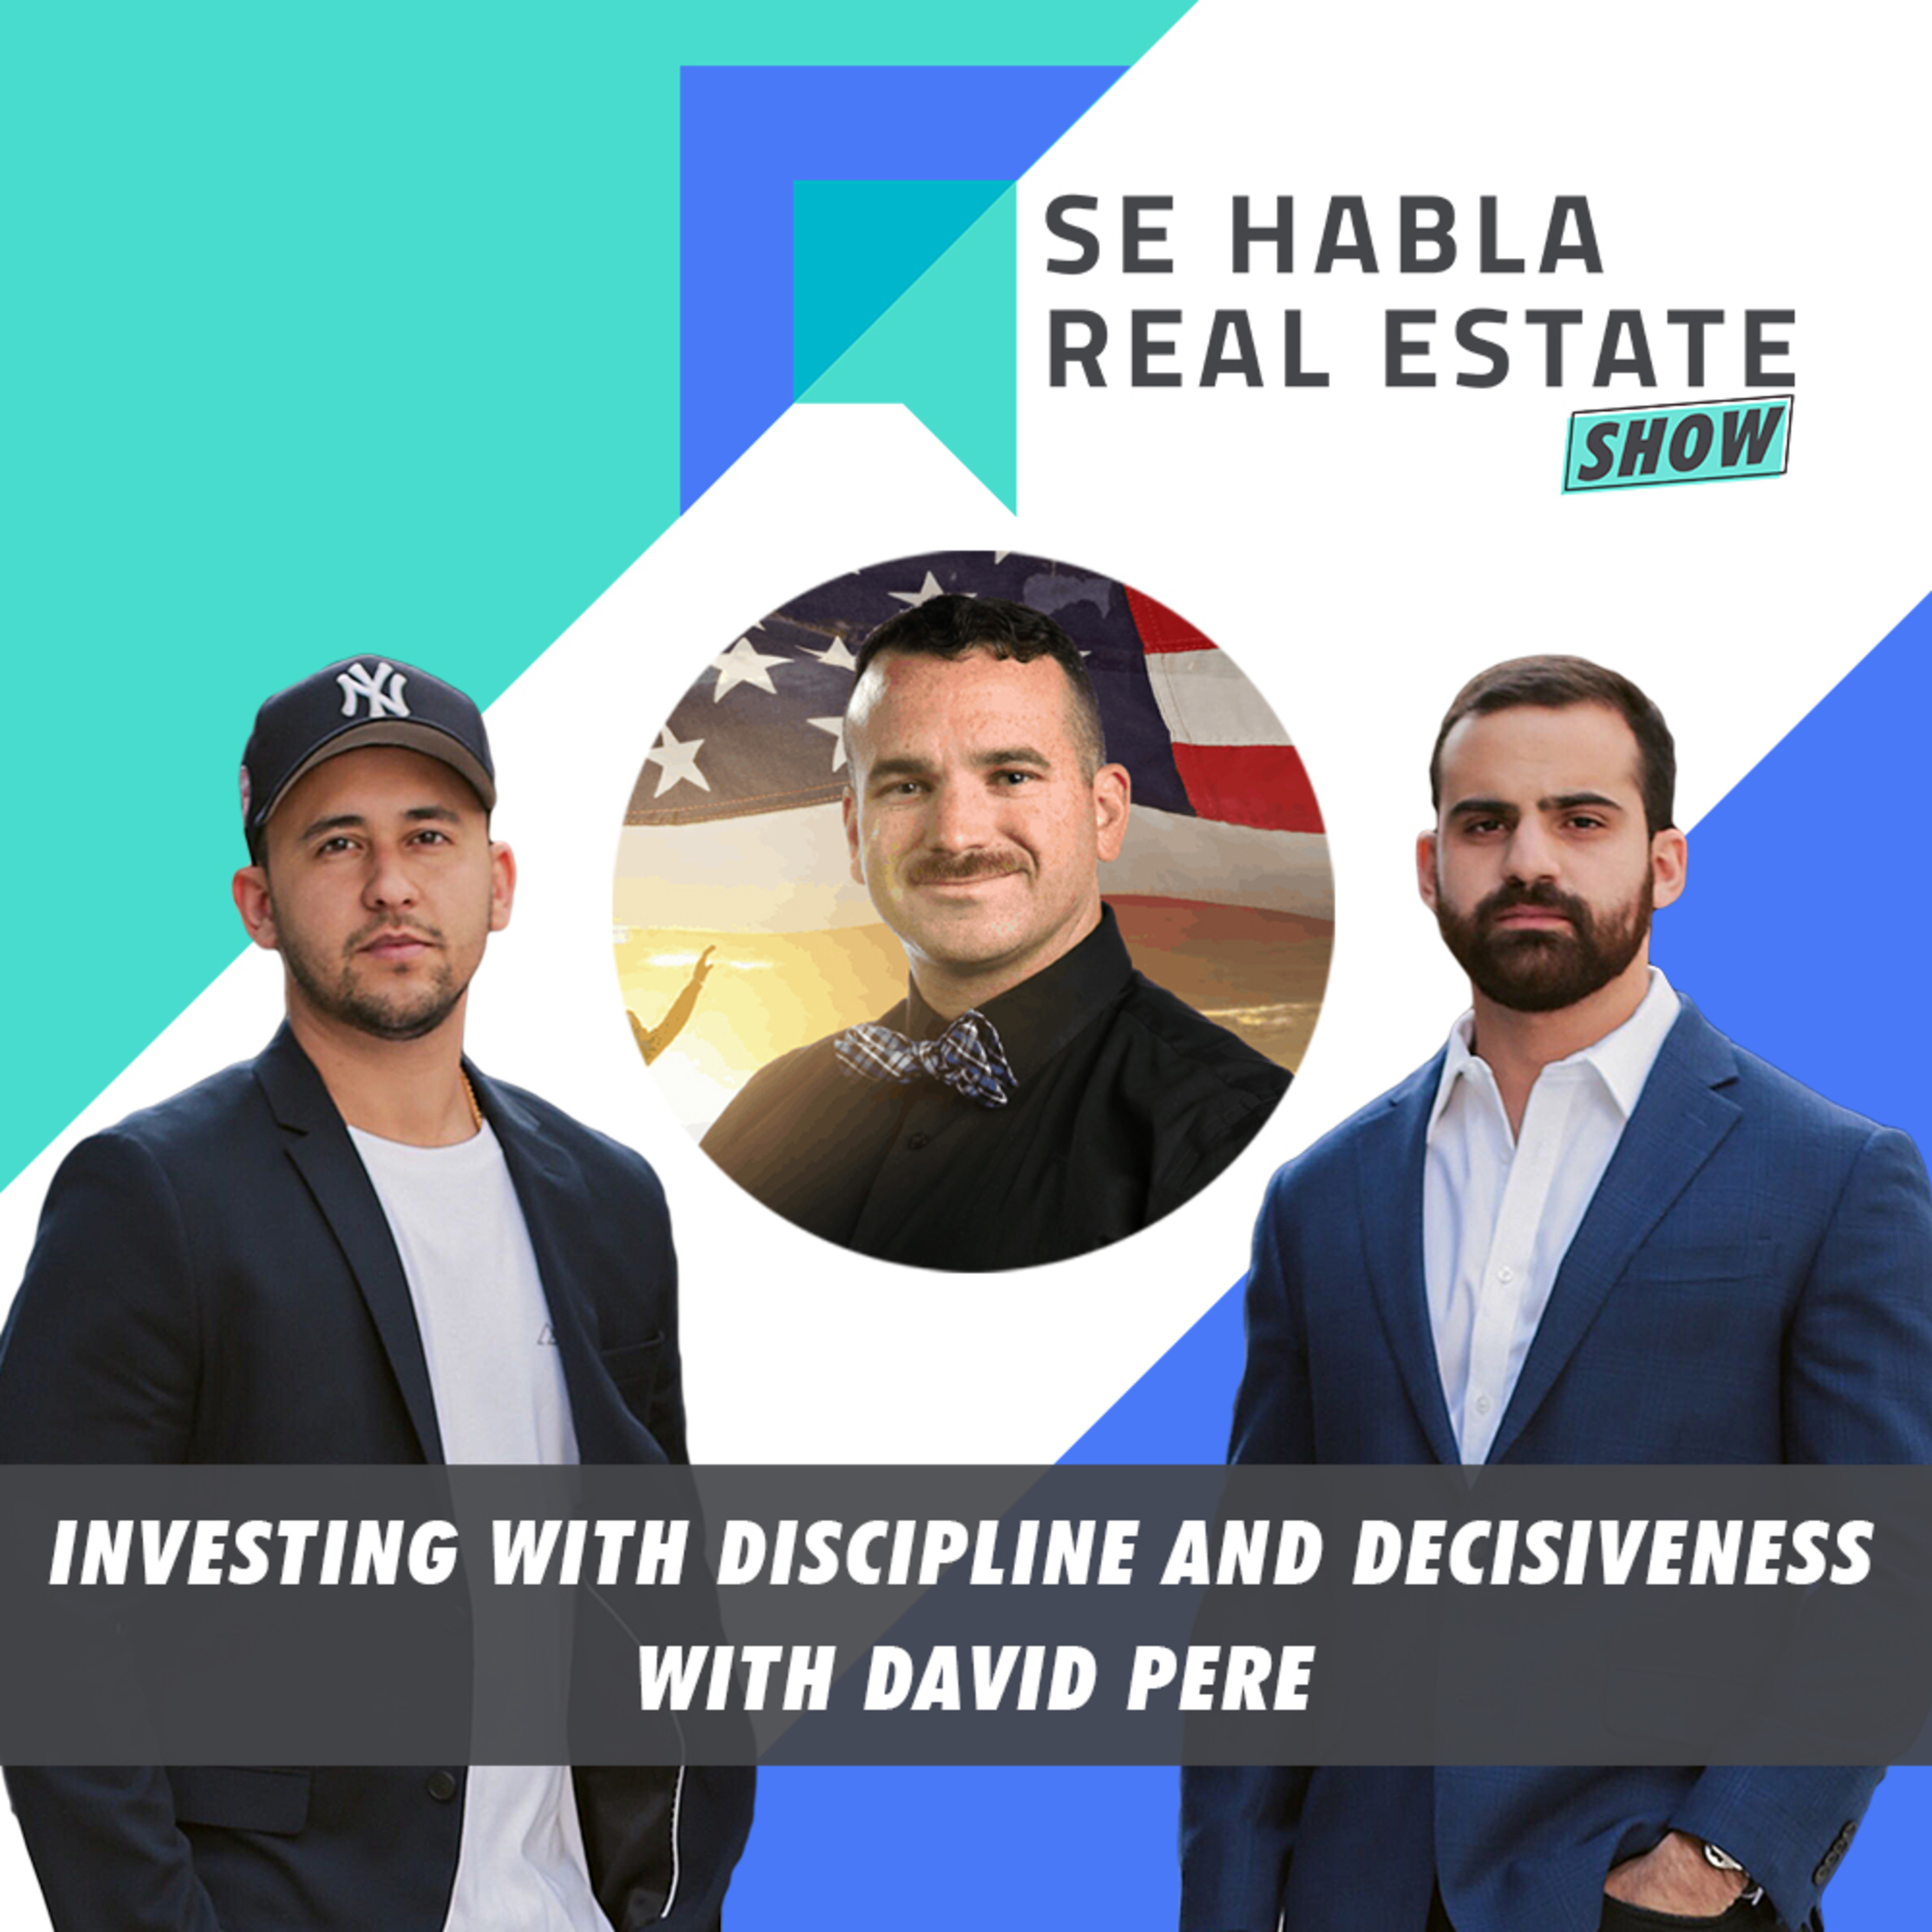 085 - SHRE: Investing with Discipline and Decisiveness With David Pere